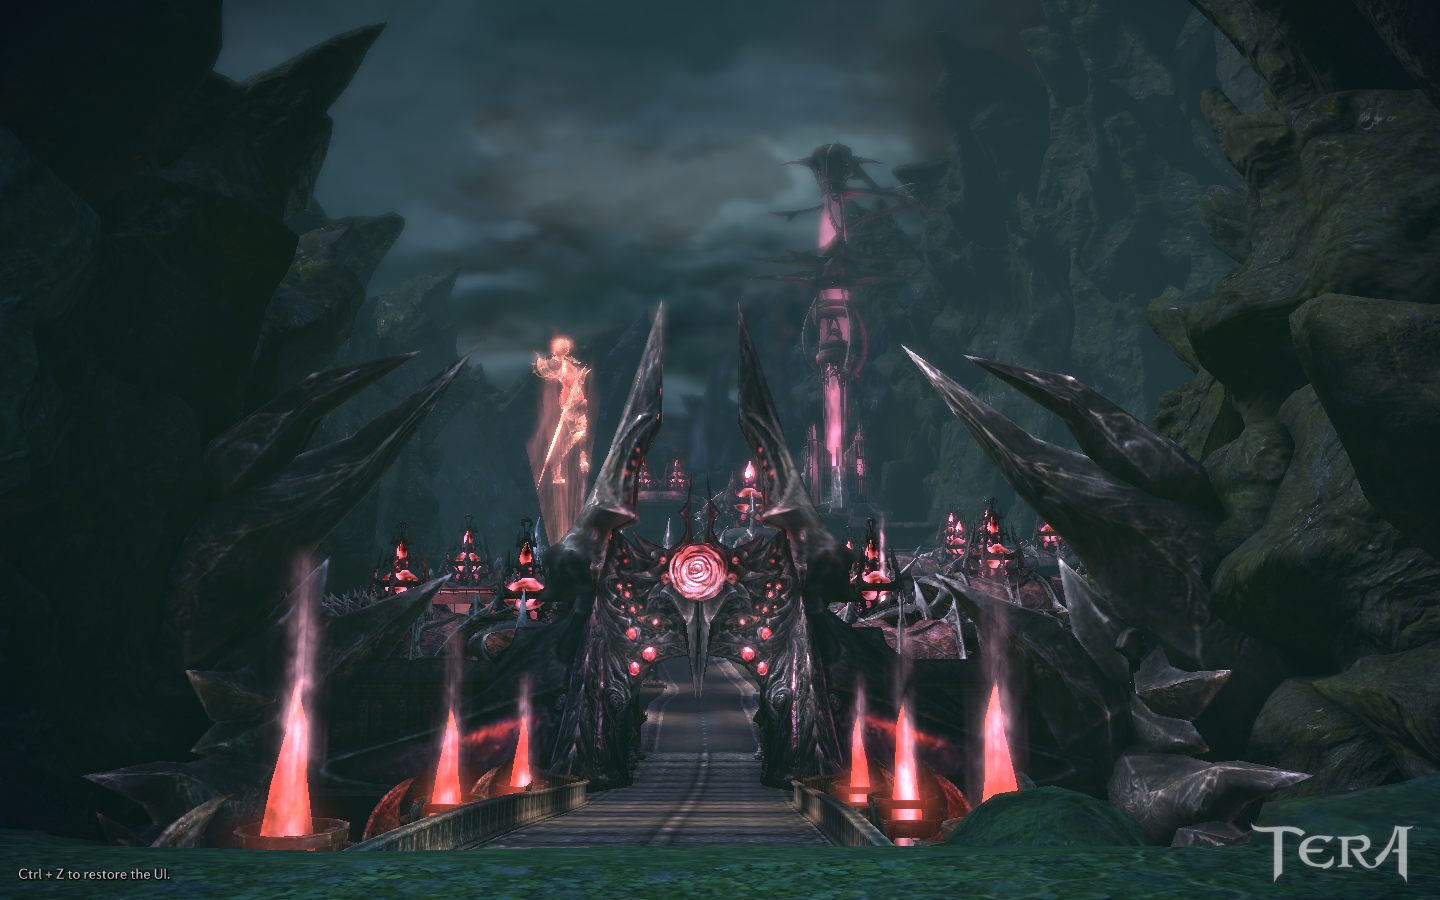 stewie games opening gameplay trailer experience preview online media removed heres tera